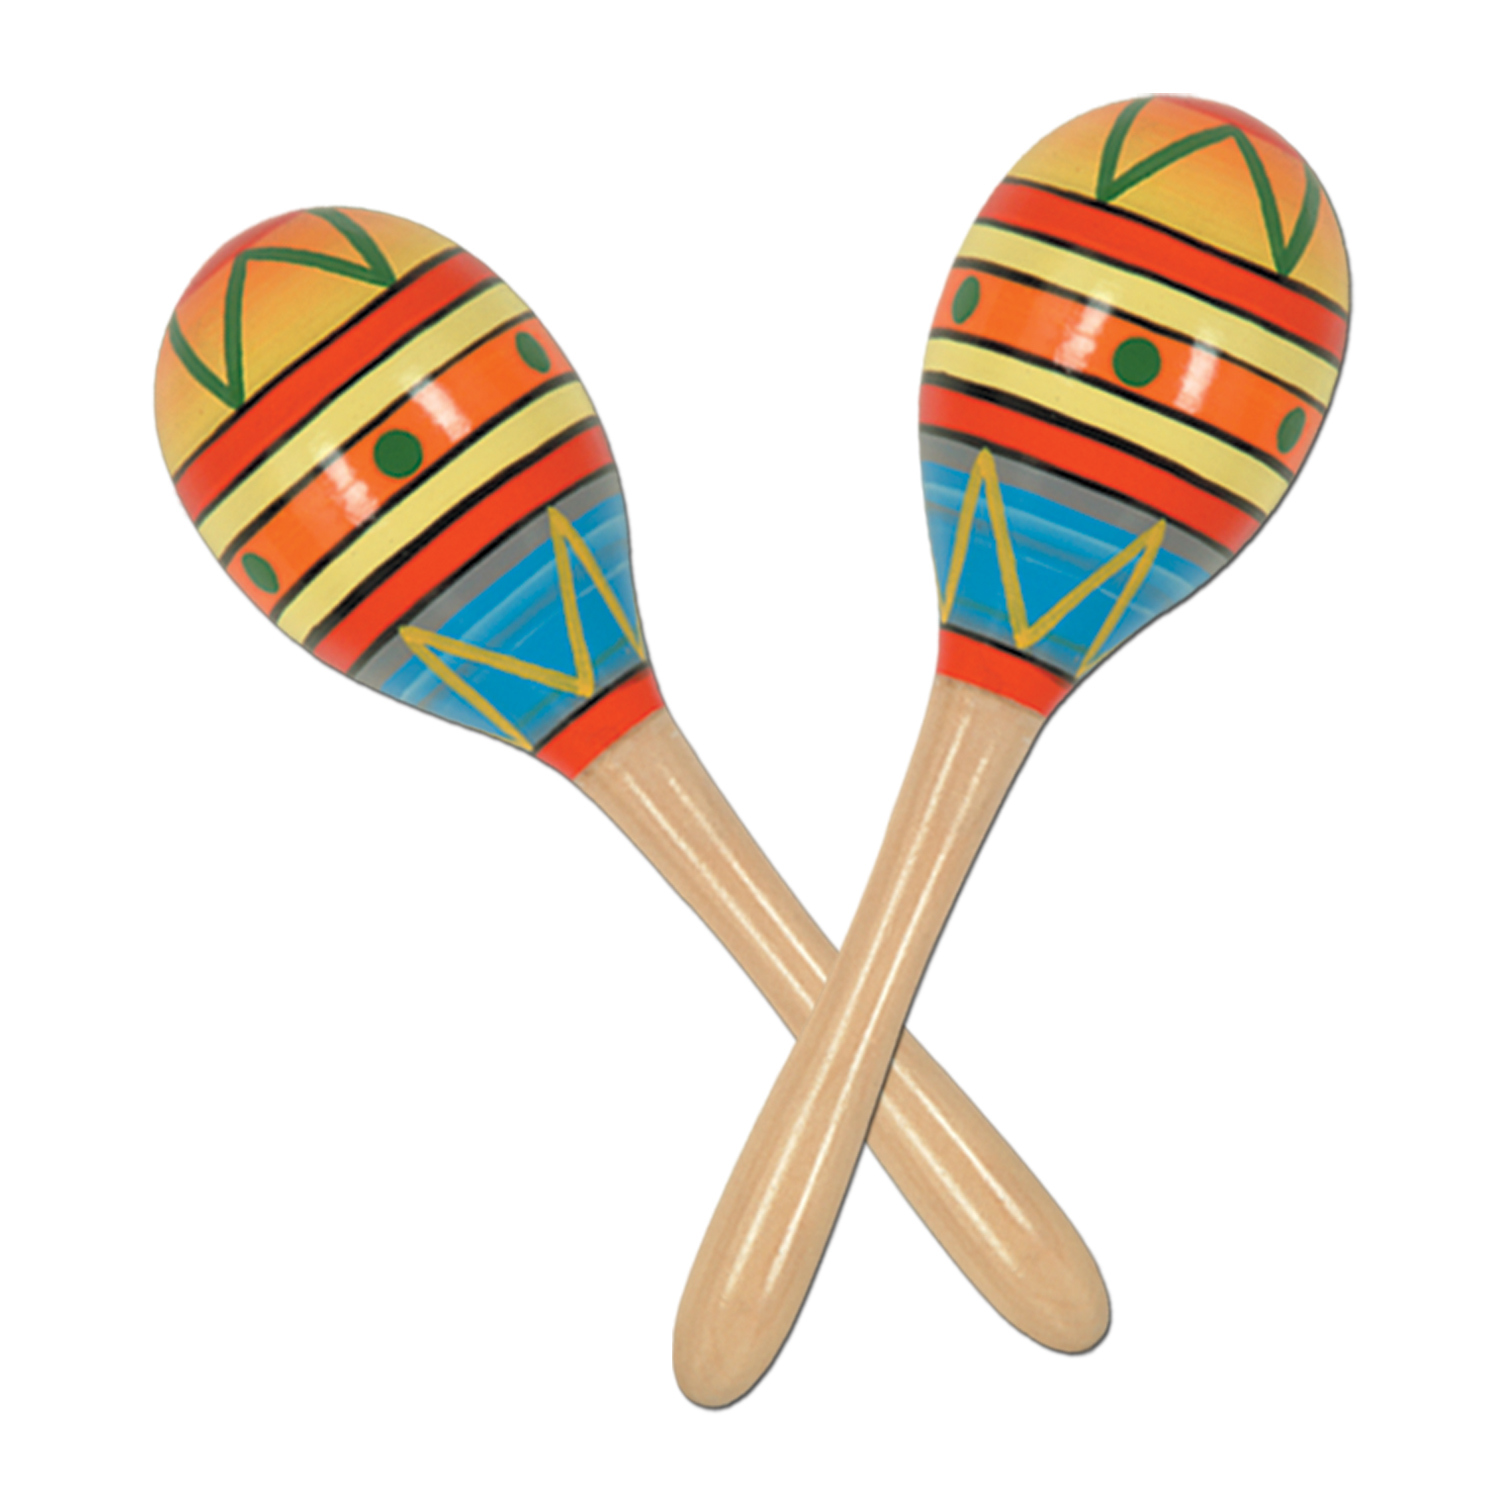 Fiesta Fun Party Maracas (Pack of 24) mexican, fiesta, party, noisemkers, international, instrument